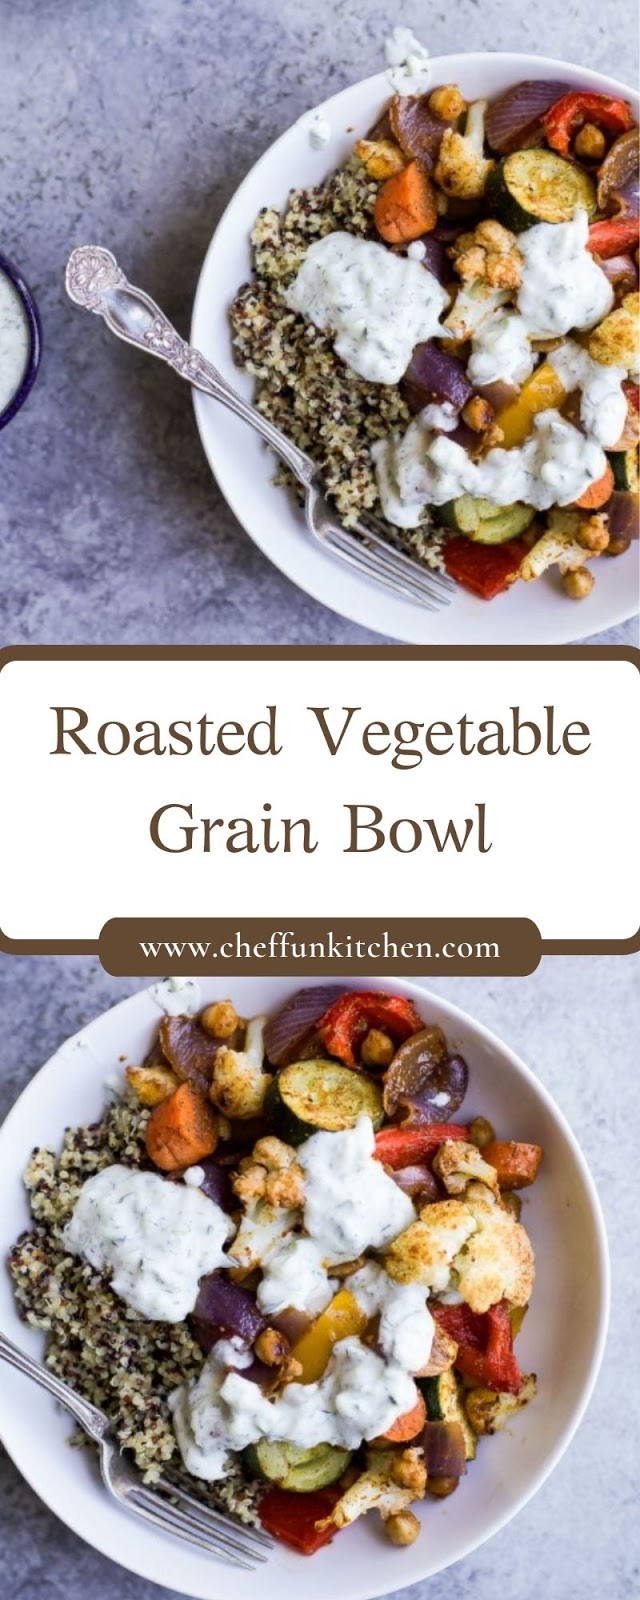 Roasted Vegetable Grain Bowl